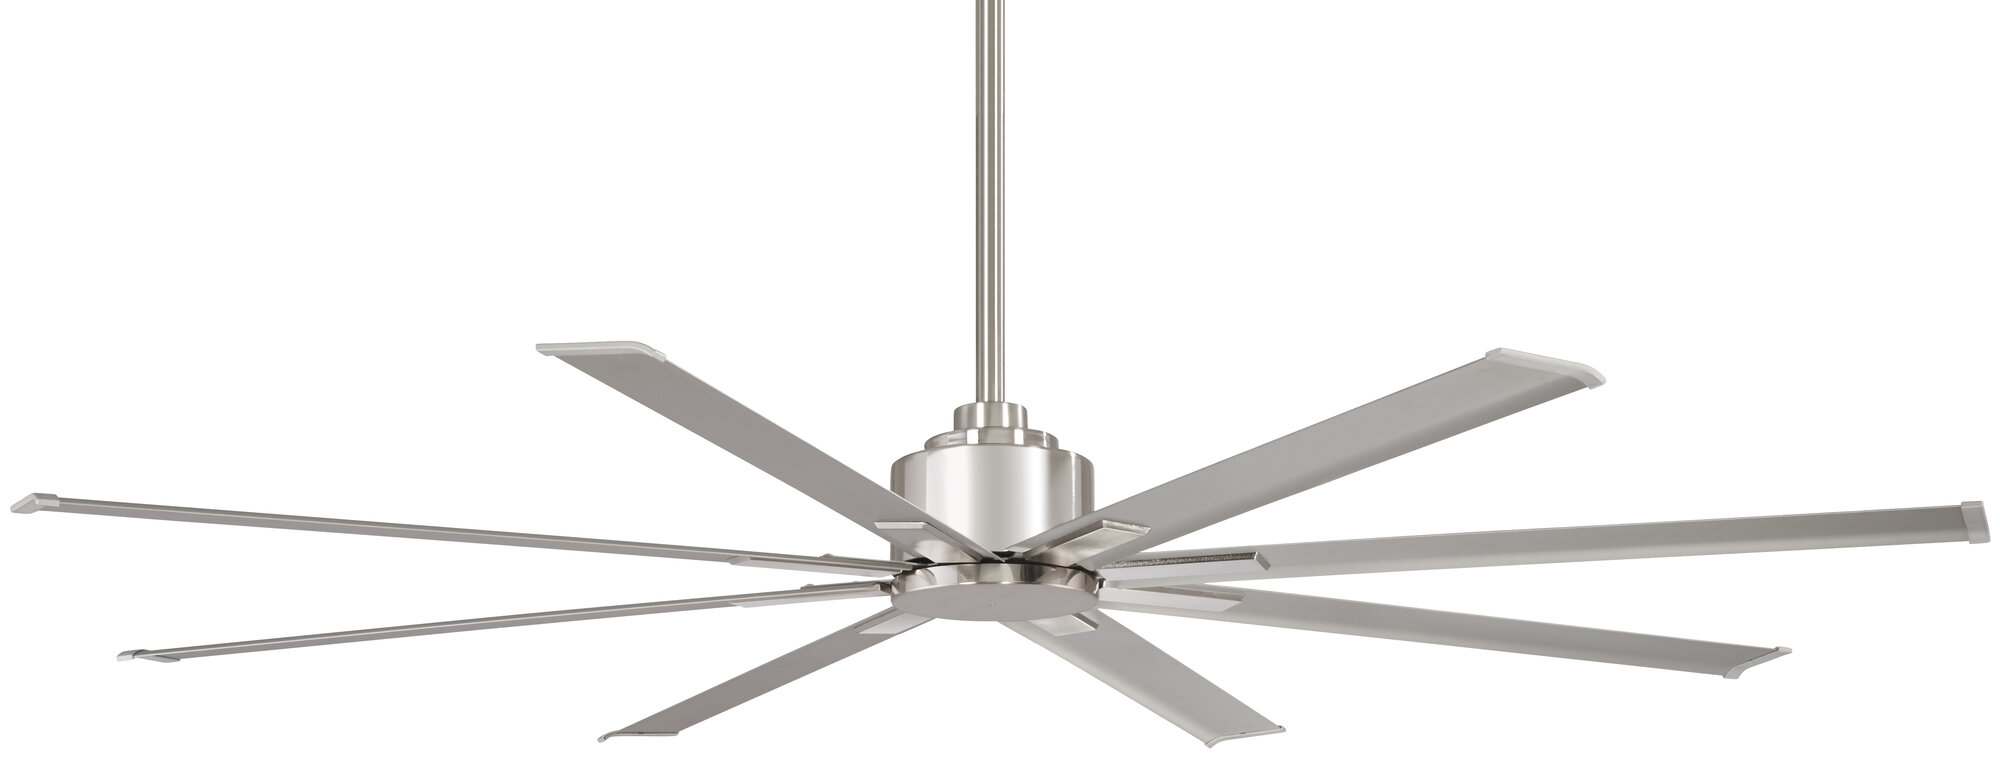 Minka aire 65 xtreme 8 blade outdoor ceiling fan with remote ebay minka aire 65 034 xtreme 8 blade outdoor aloadofball Choice Image